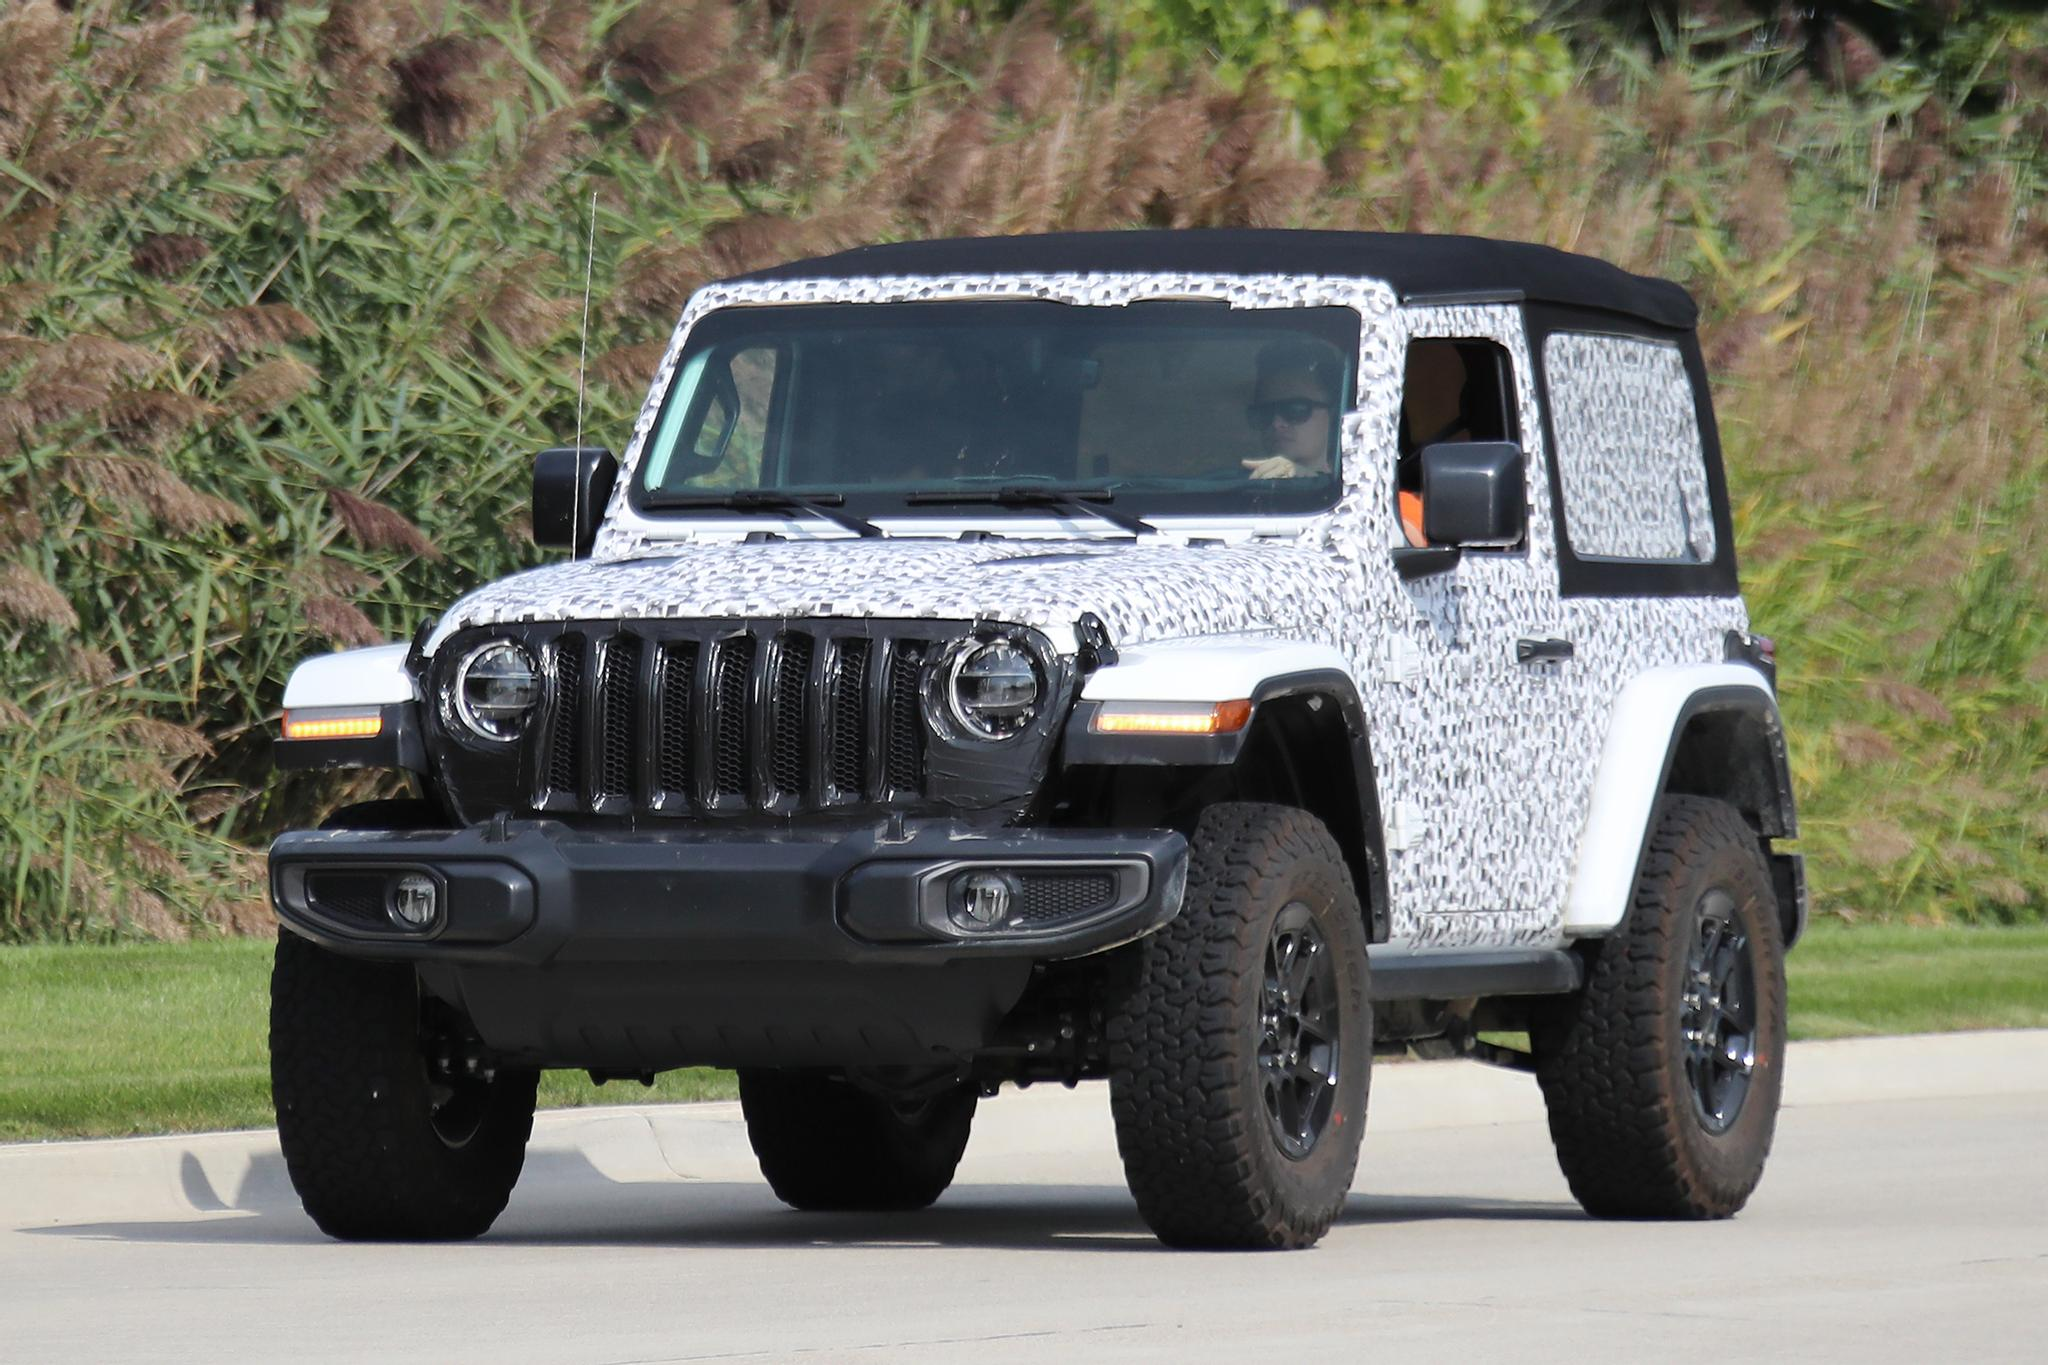 Jeep Wrangler Rims And Tire Packages >> Salakuvissa Uusi Jeep Wrangler Tuulilasi Tuulilasi